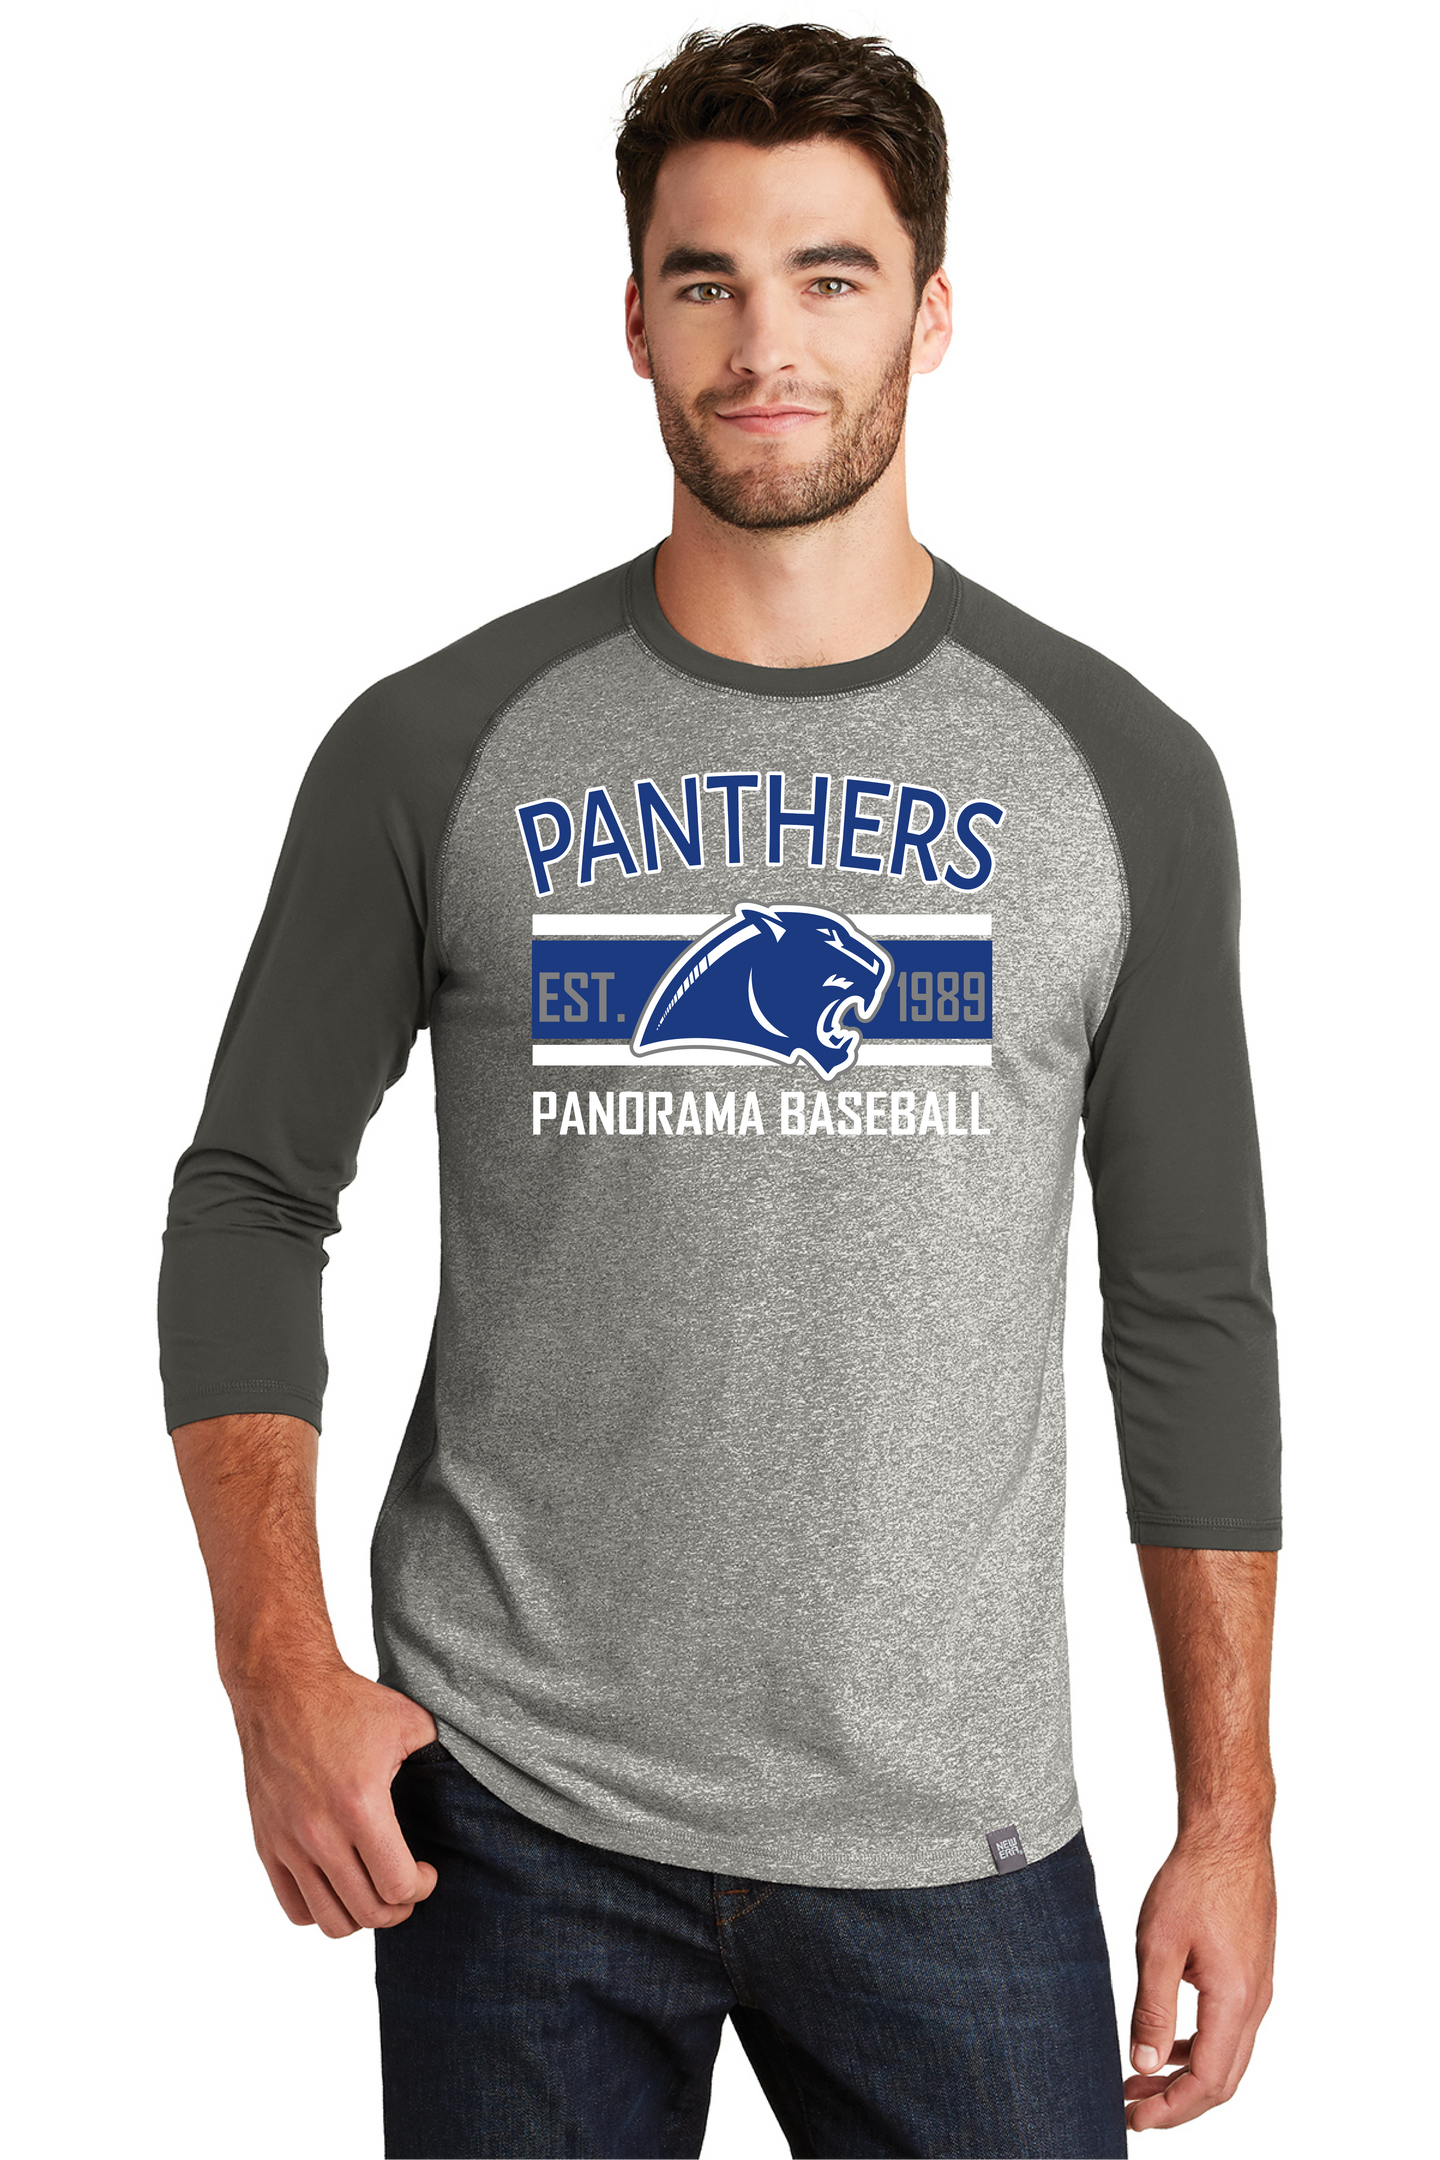 2021 PAN BB- New Era® Heritage Blend 3/4-Sleeve Baseball Raglan Tee NEA104 LIGHT TWIST GRAPHITE